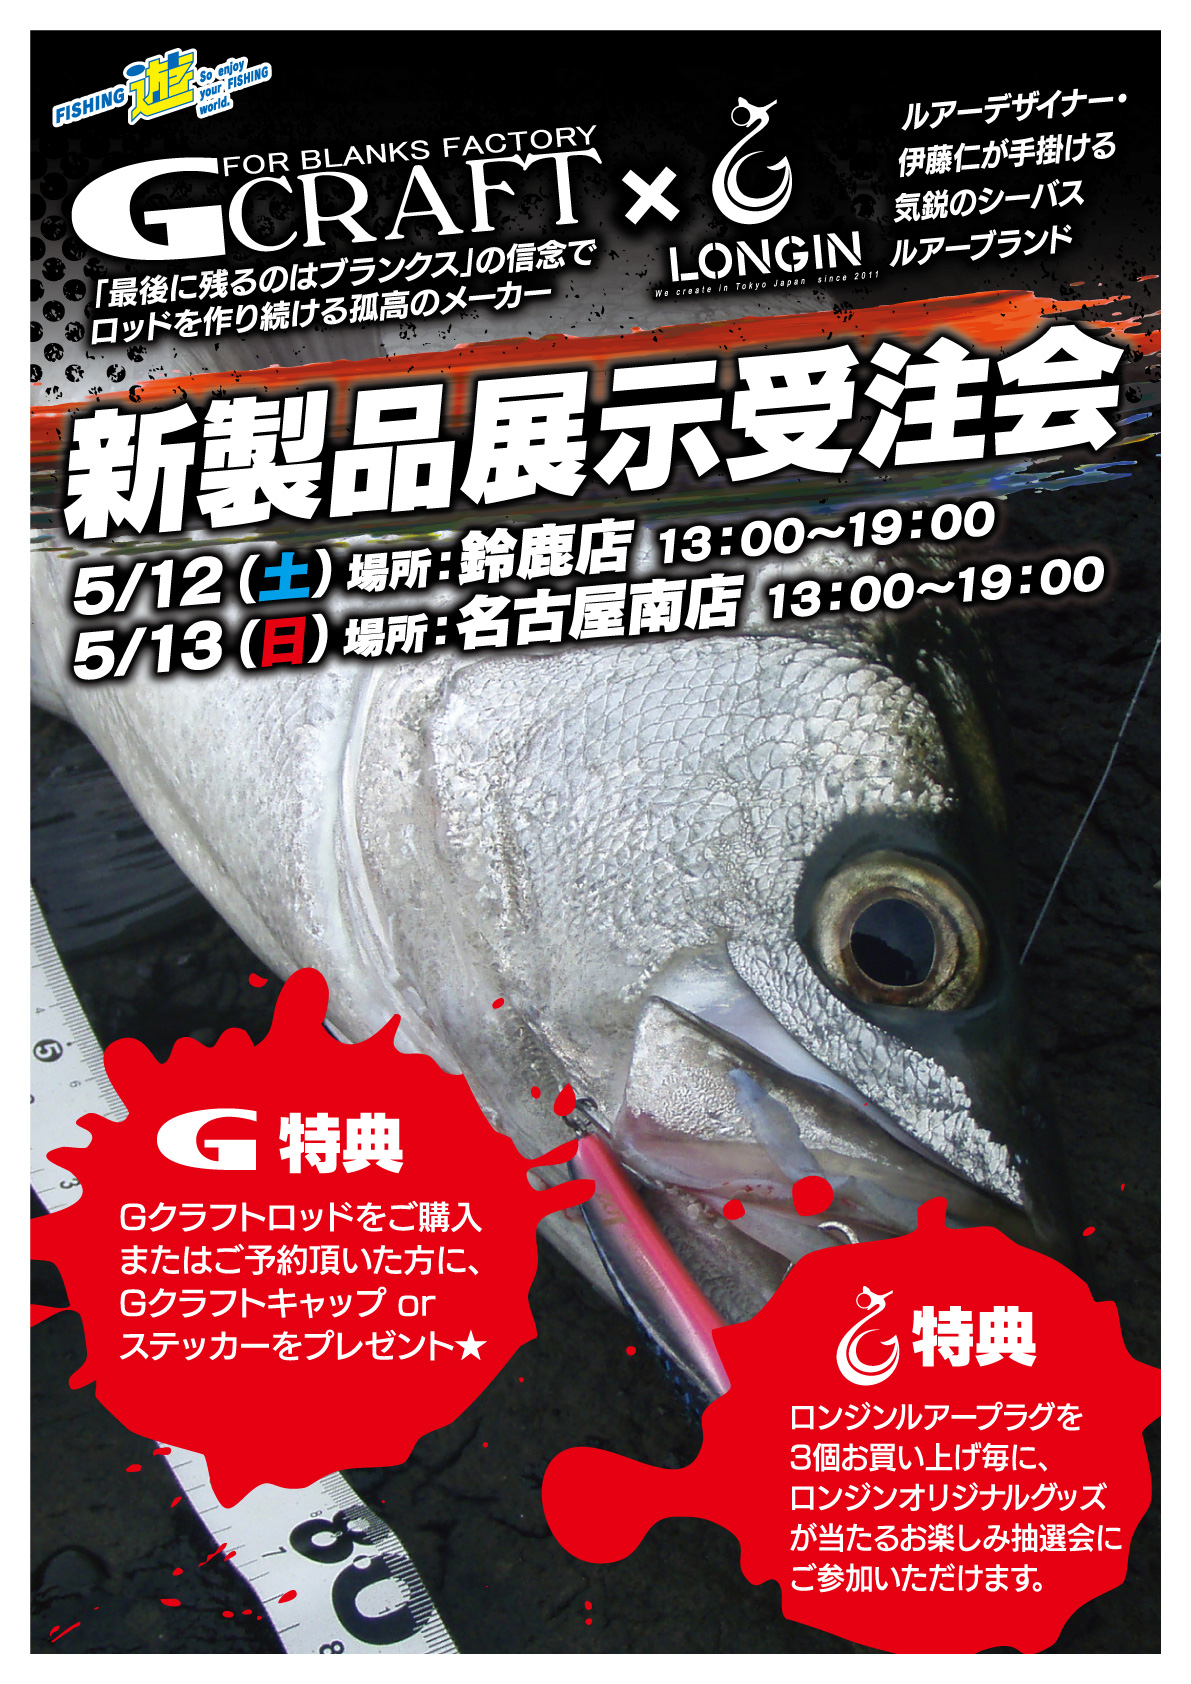 <a href=&quot;http://fishing-you.com/event/180512_13&quot;>鈴鹿店・名古屋南店 Gクラフト×ロンジン新製品展示受注会</a>